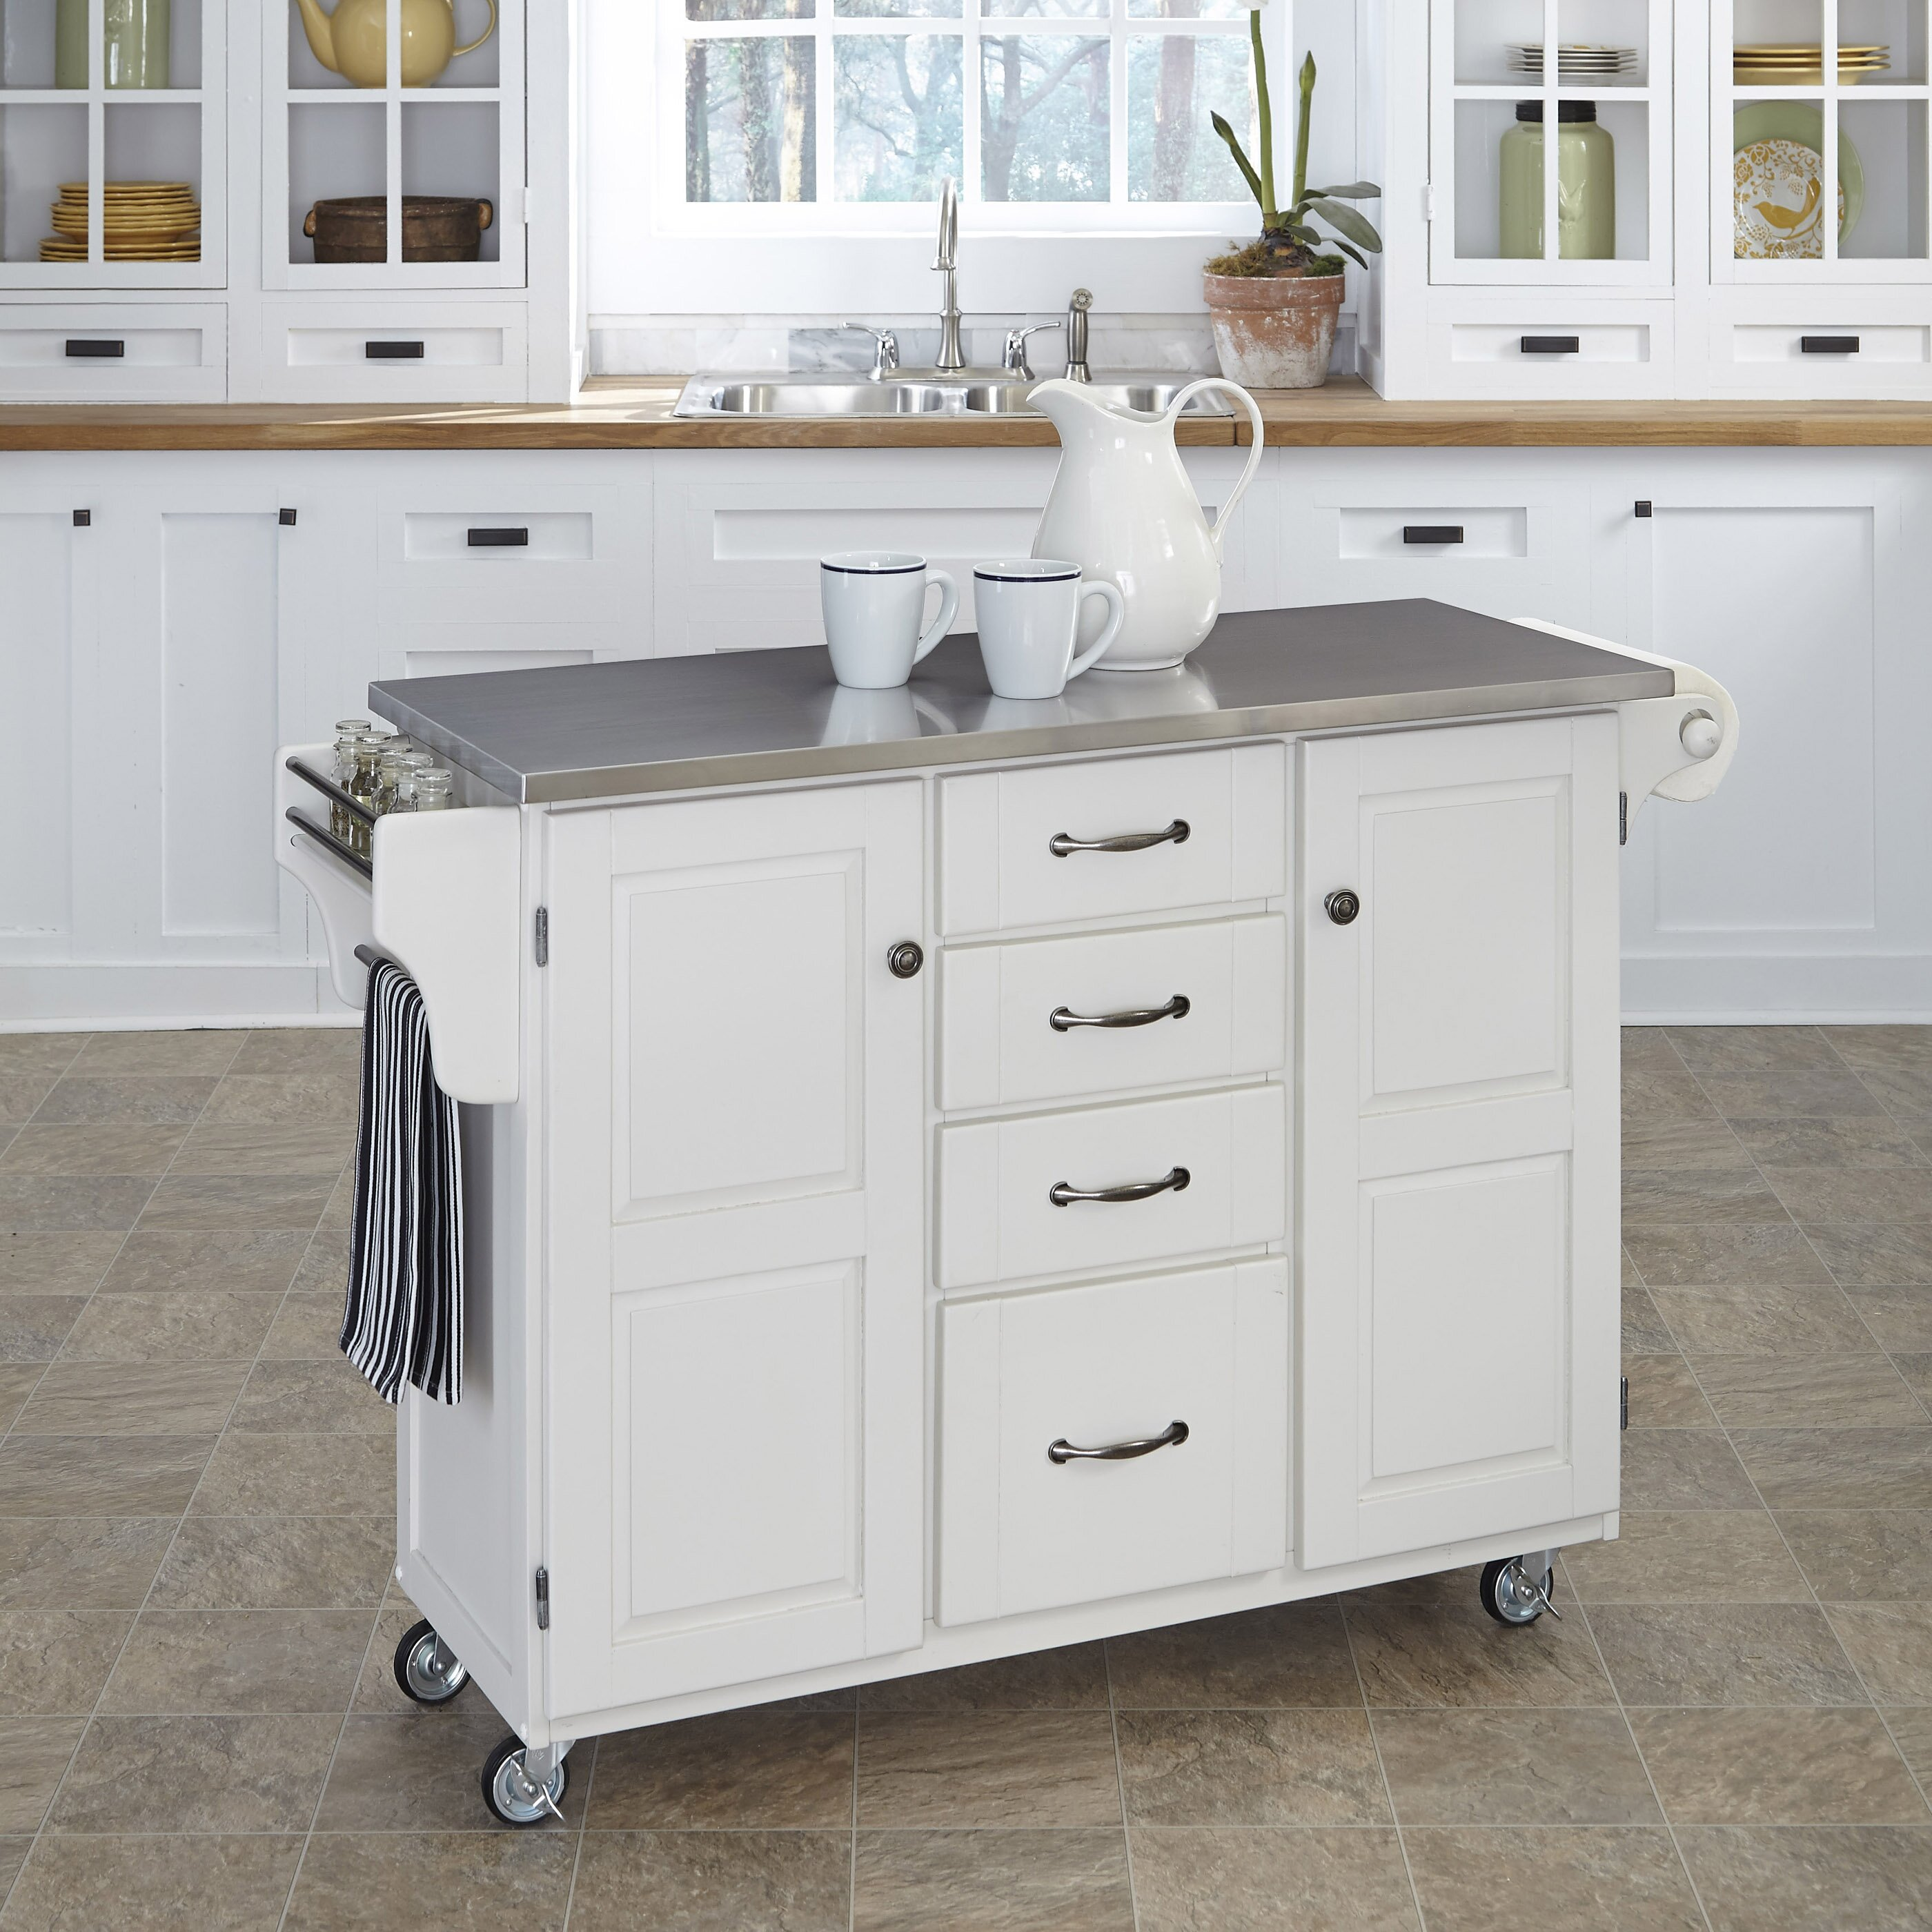 kitchen island stainless steel top home styles create a cart kitchen island with stainless steel top reviews wayfair 2972